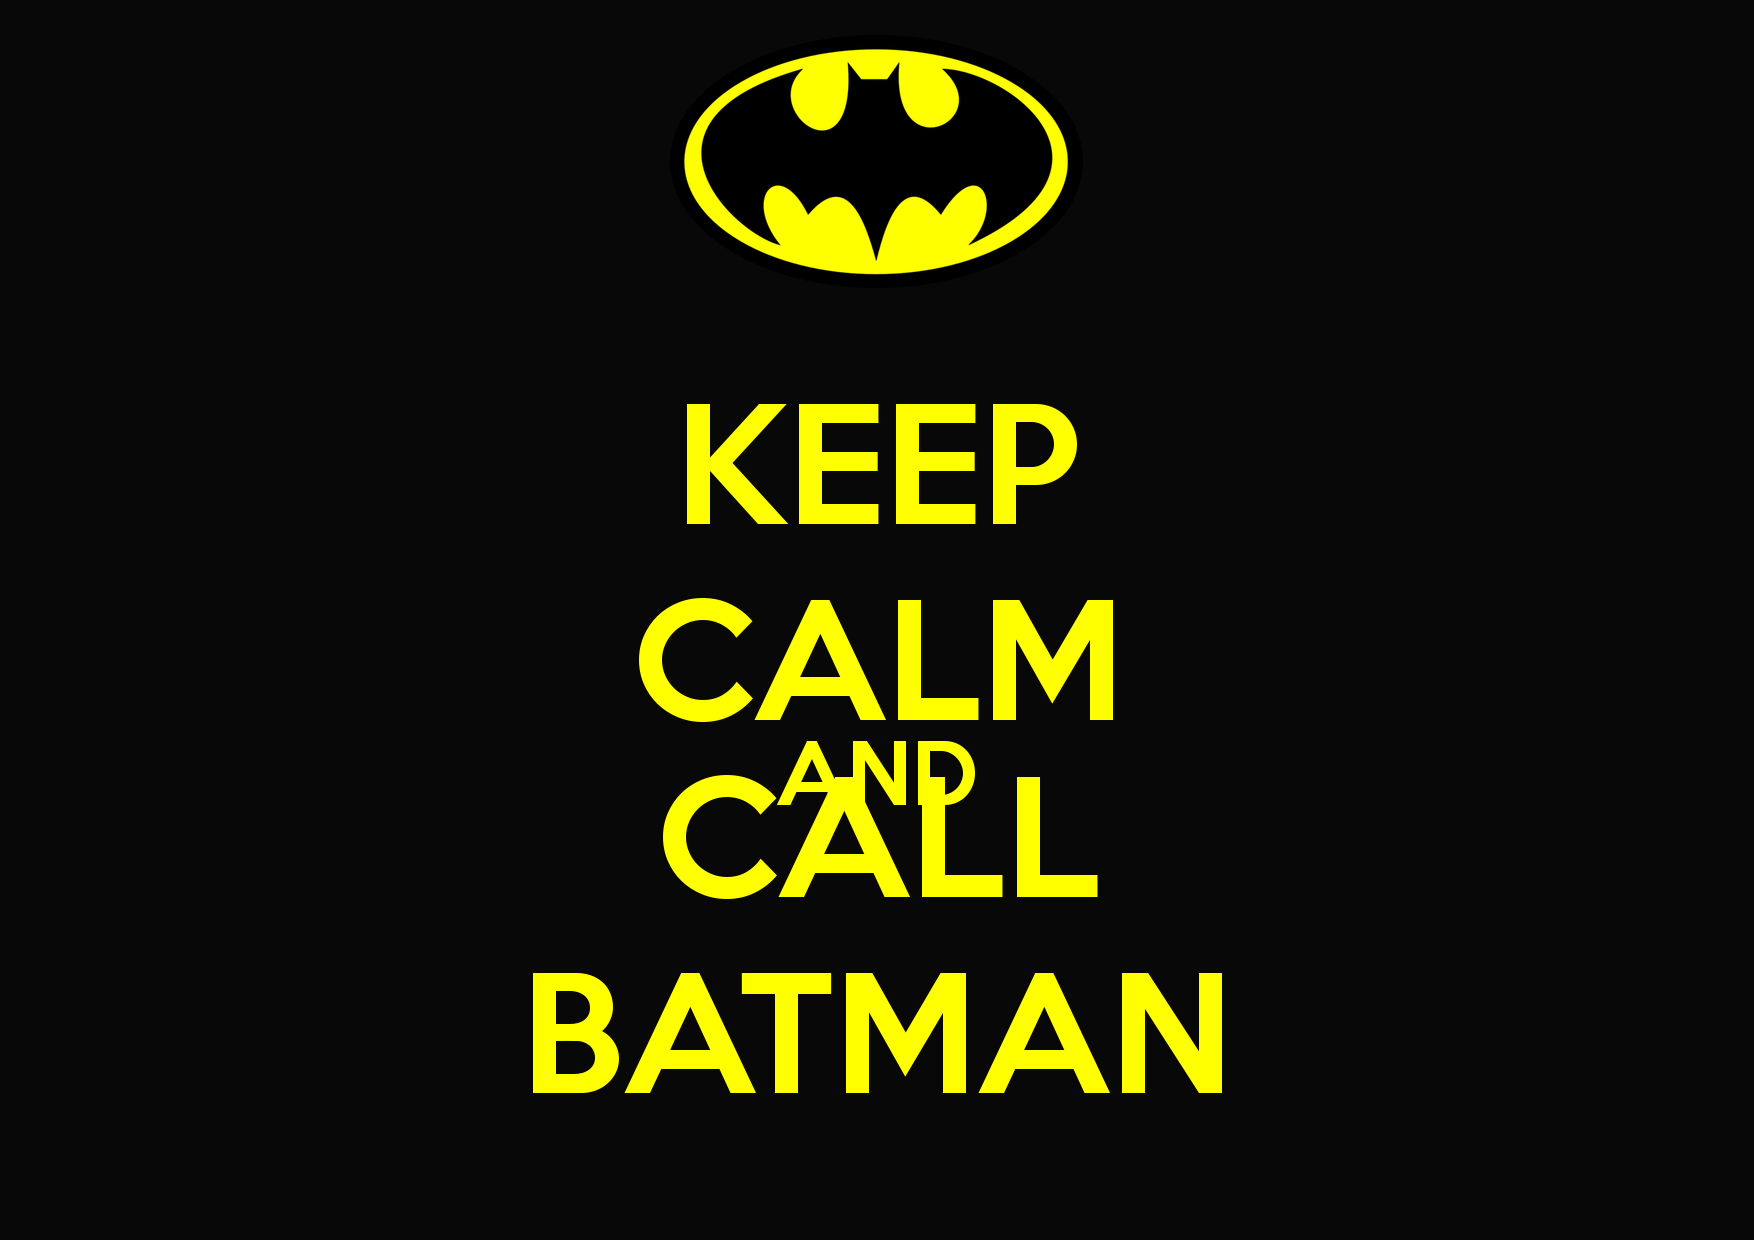 2015-04-21-1429619256-8854629-keepcalmandcallbatman886.png